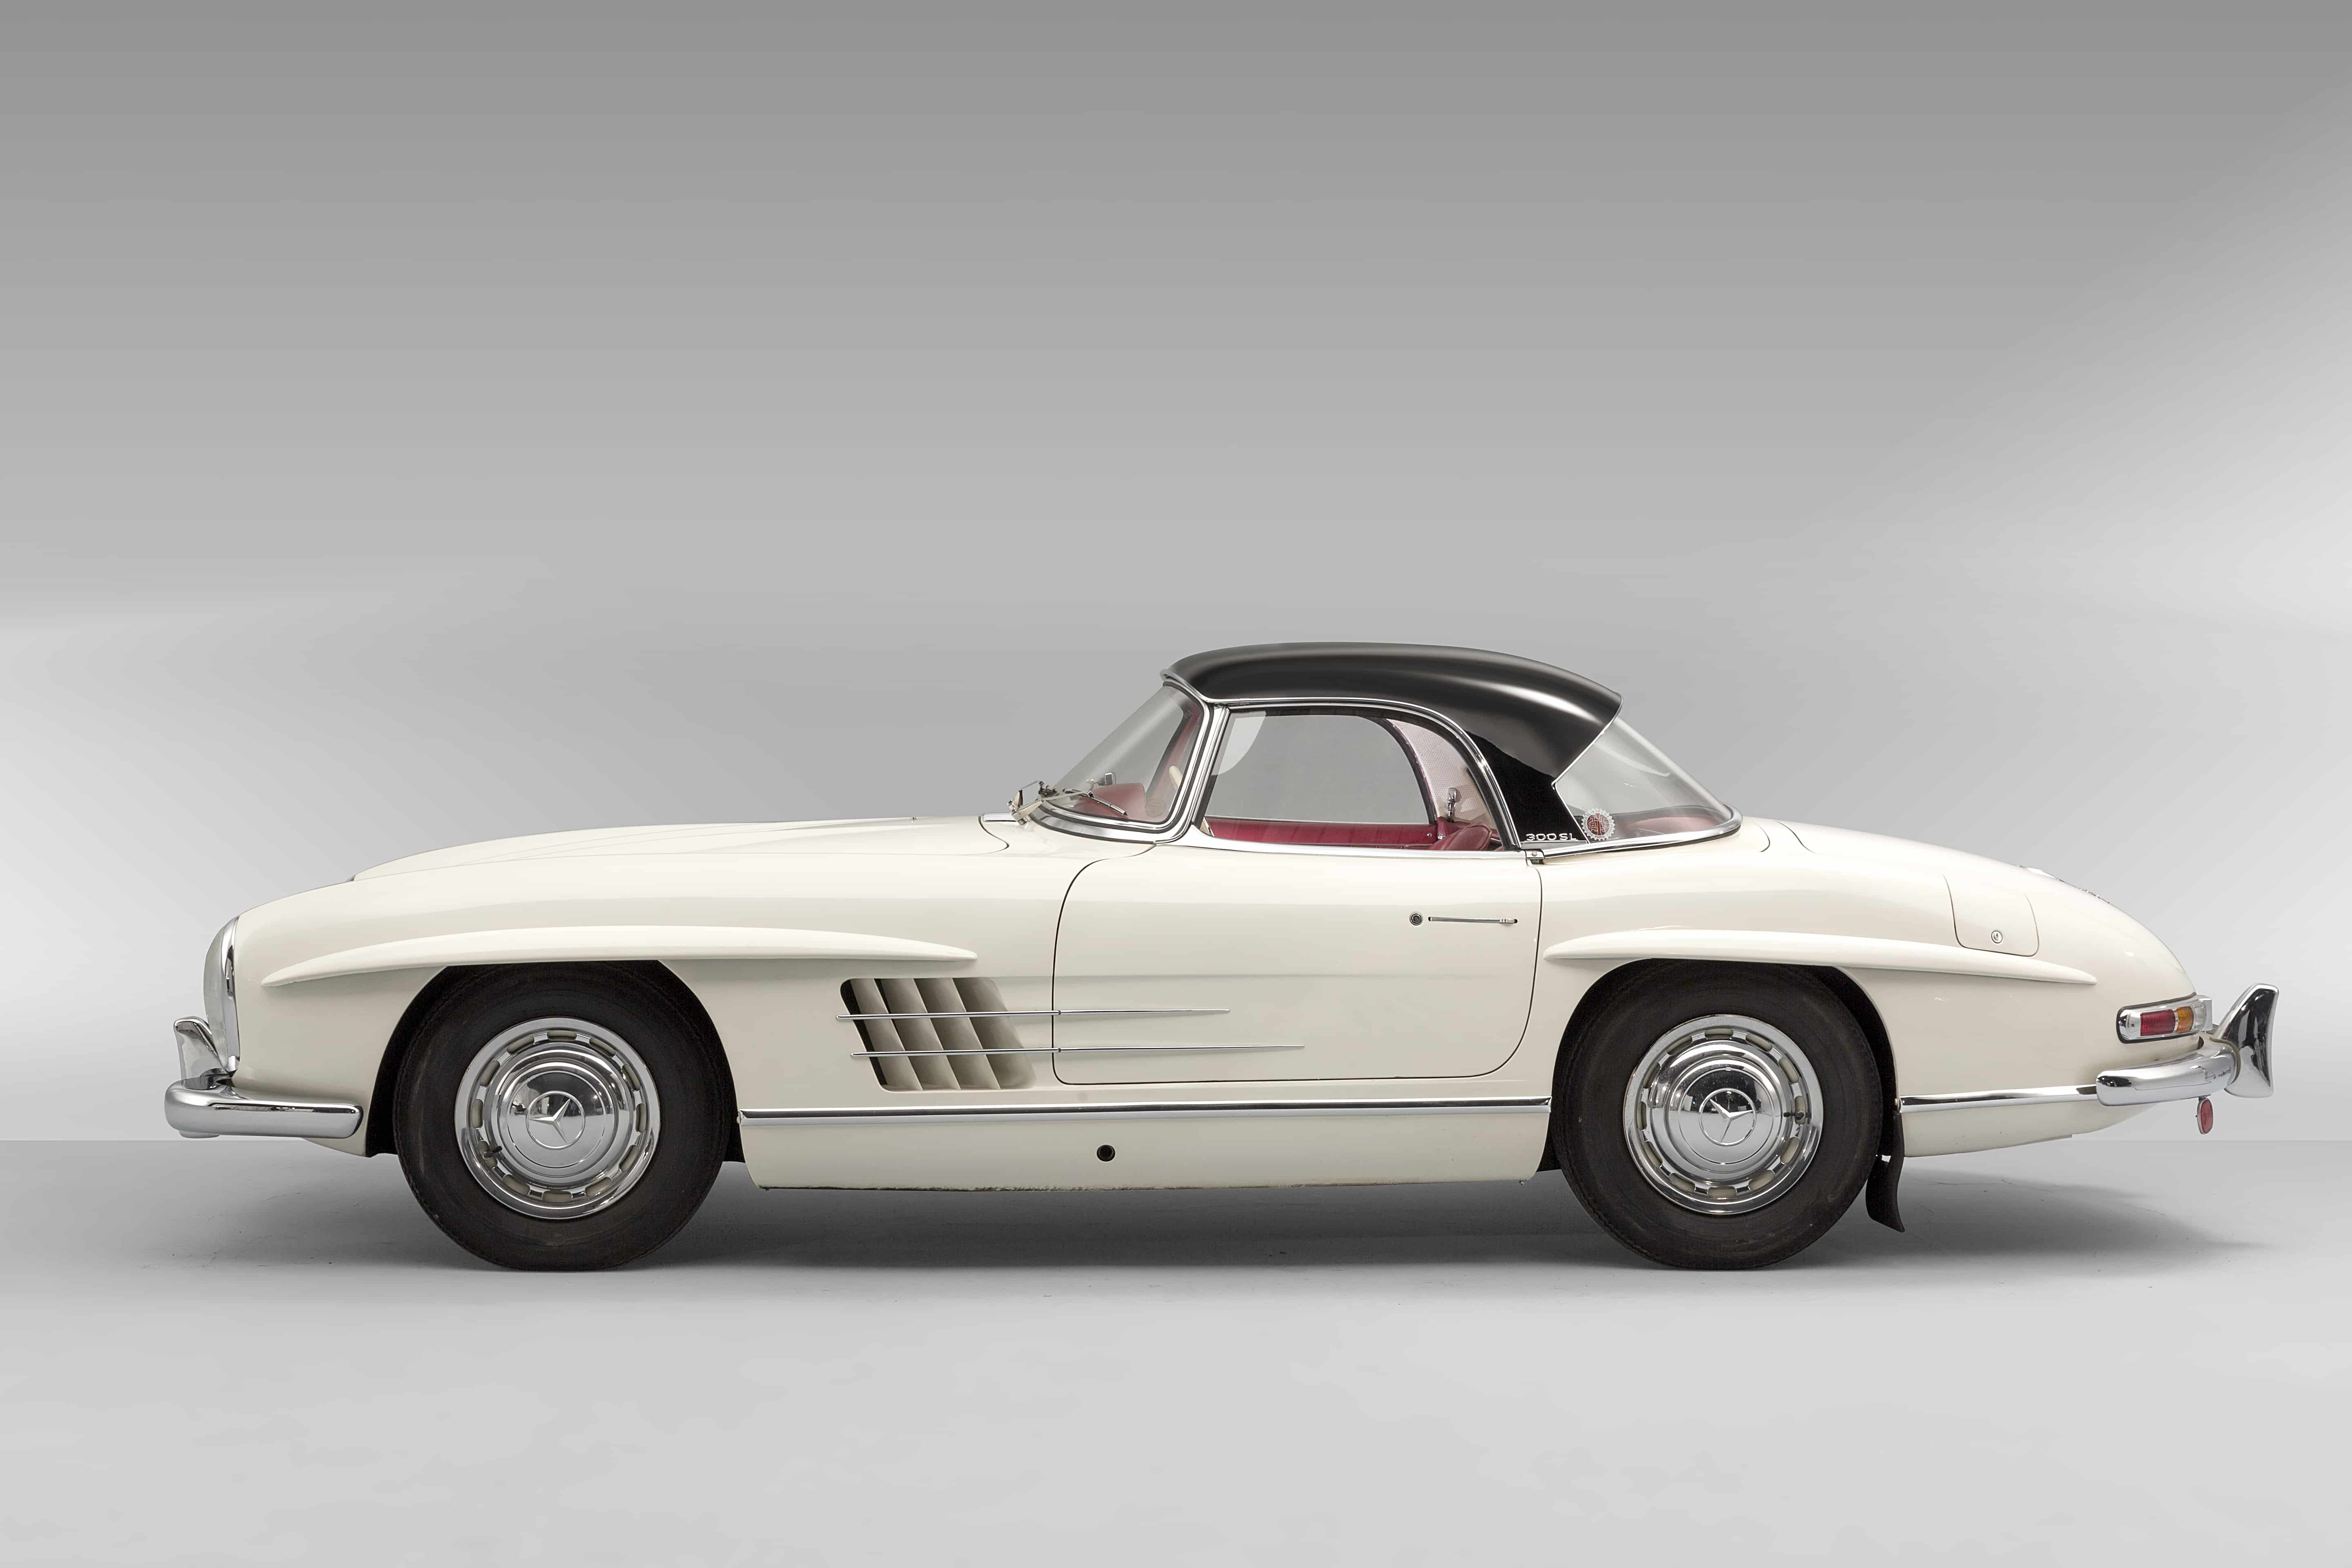 1963 Mercedes-Benz 300SL Roadster, Auctioned by Artcurial in July 2018 for £ 2,782,000. Photo Artcurial : Christian Martin